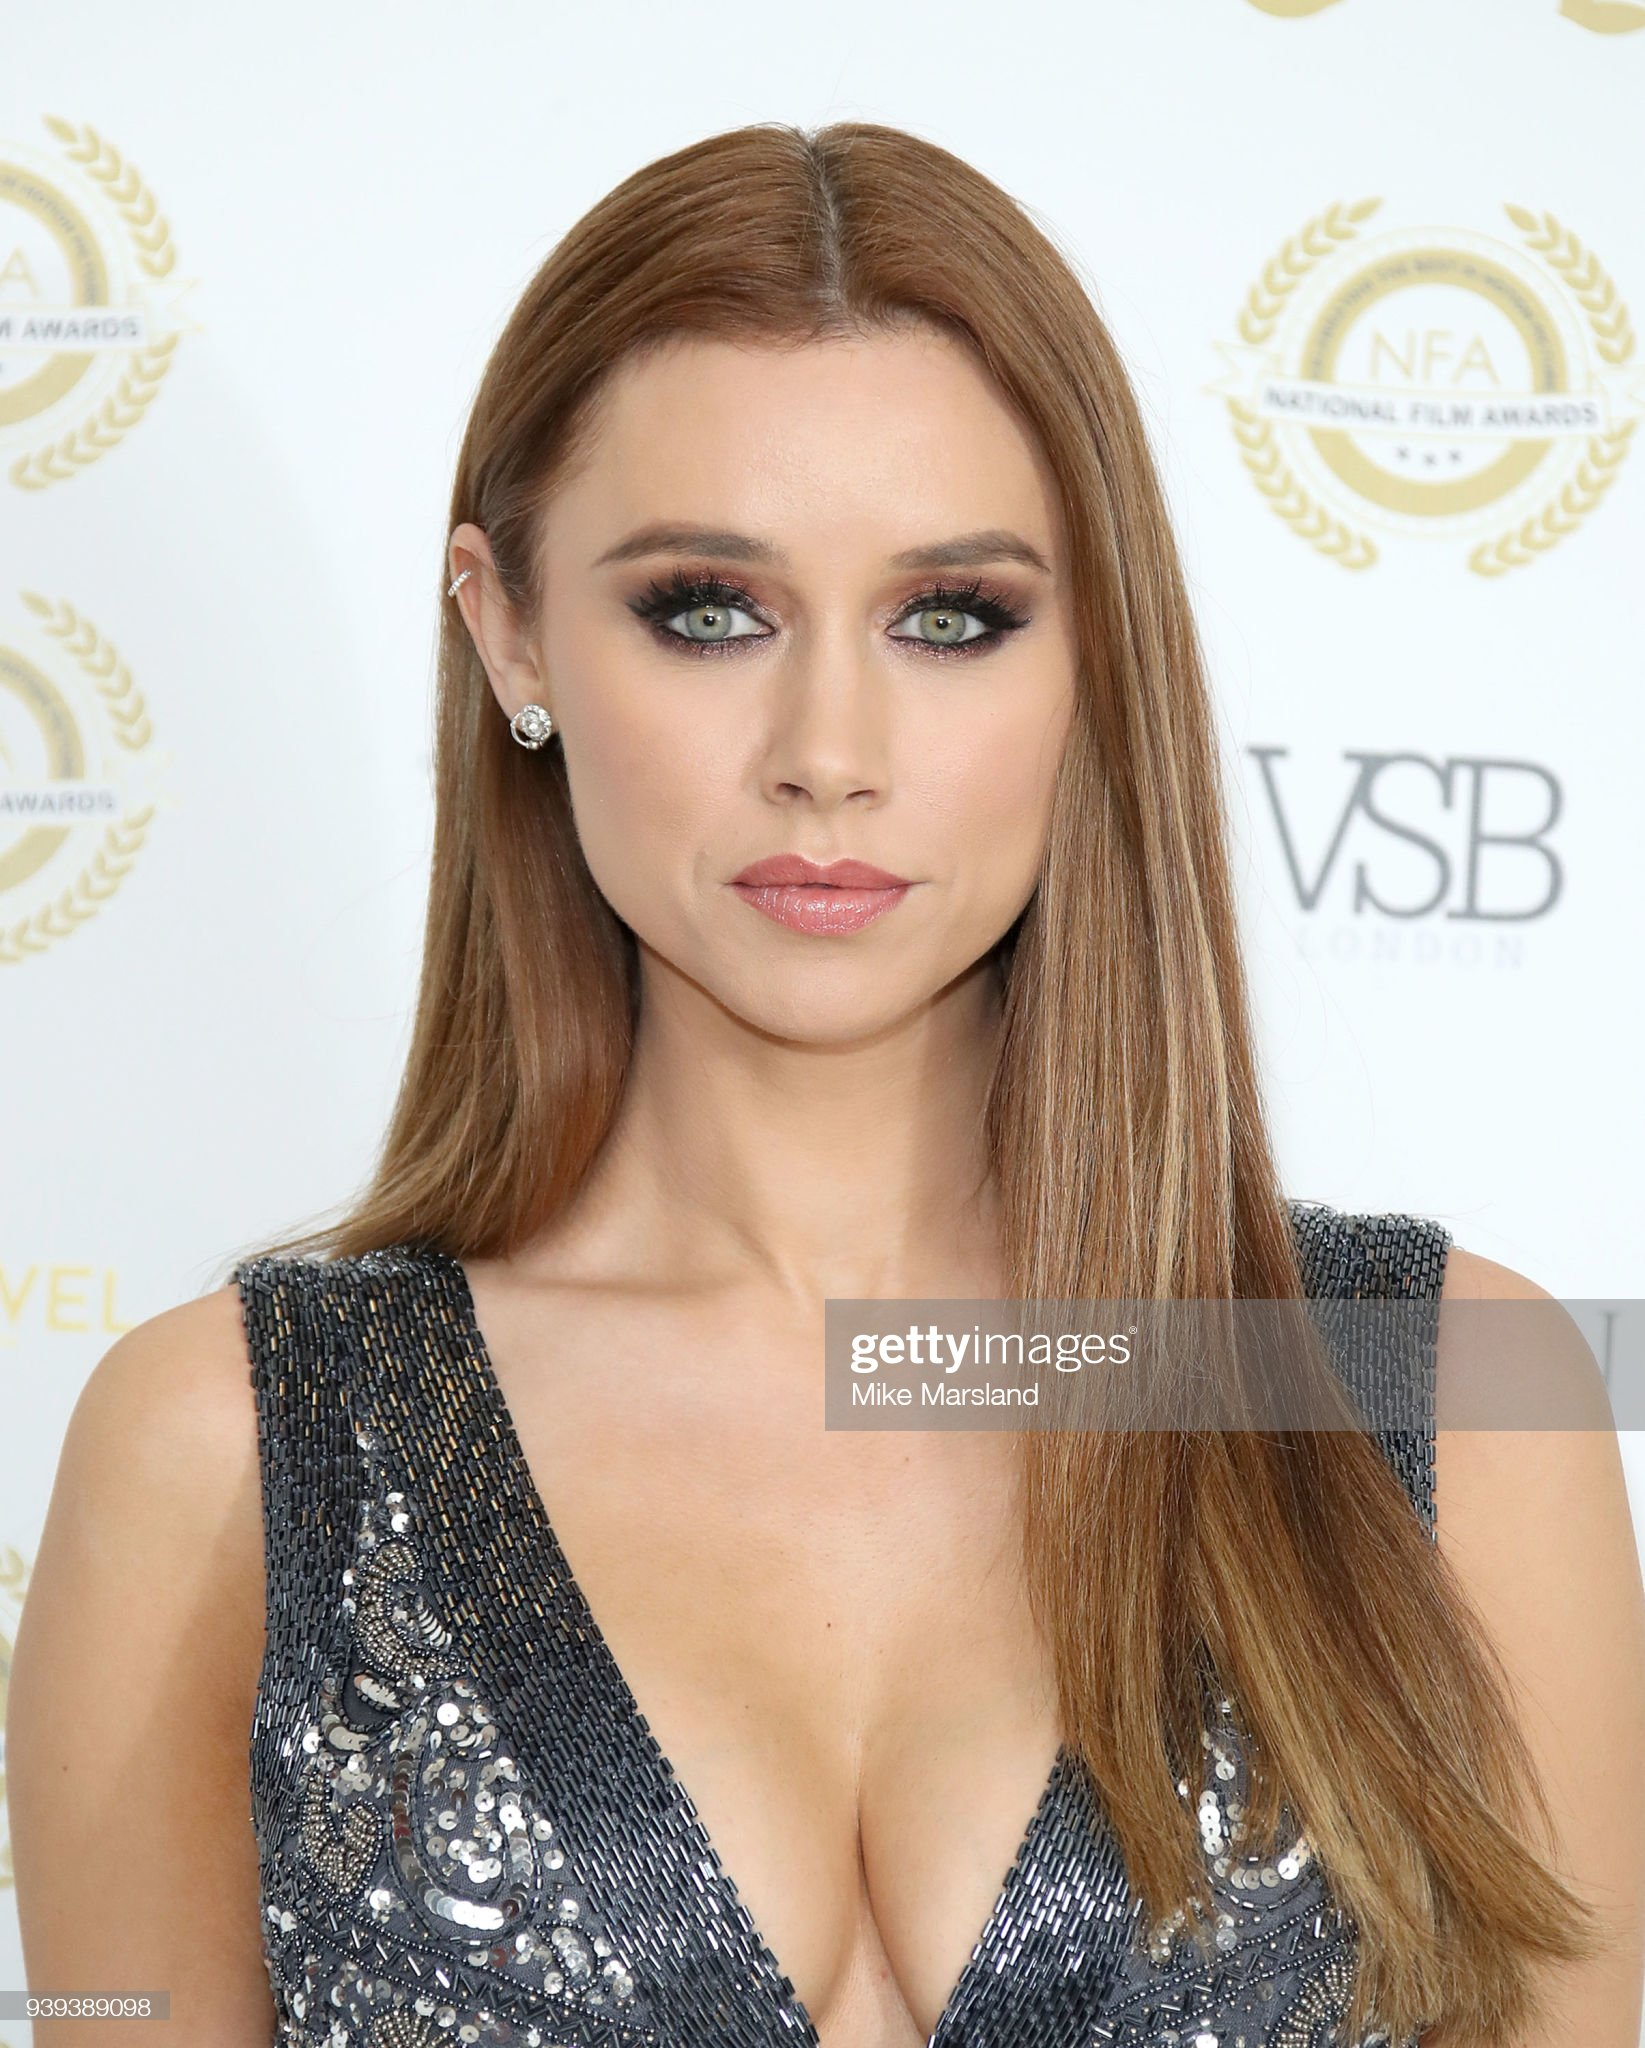 Ojos verdes - Famosas y famosos con los ojos de color VERDE Una-healy-attends-the-national-film-awards-uk-at-portchester-house-on-picture-id939389098?s=2048x2048